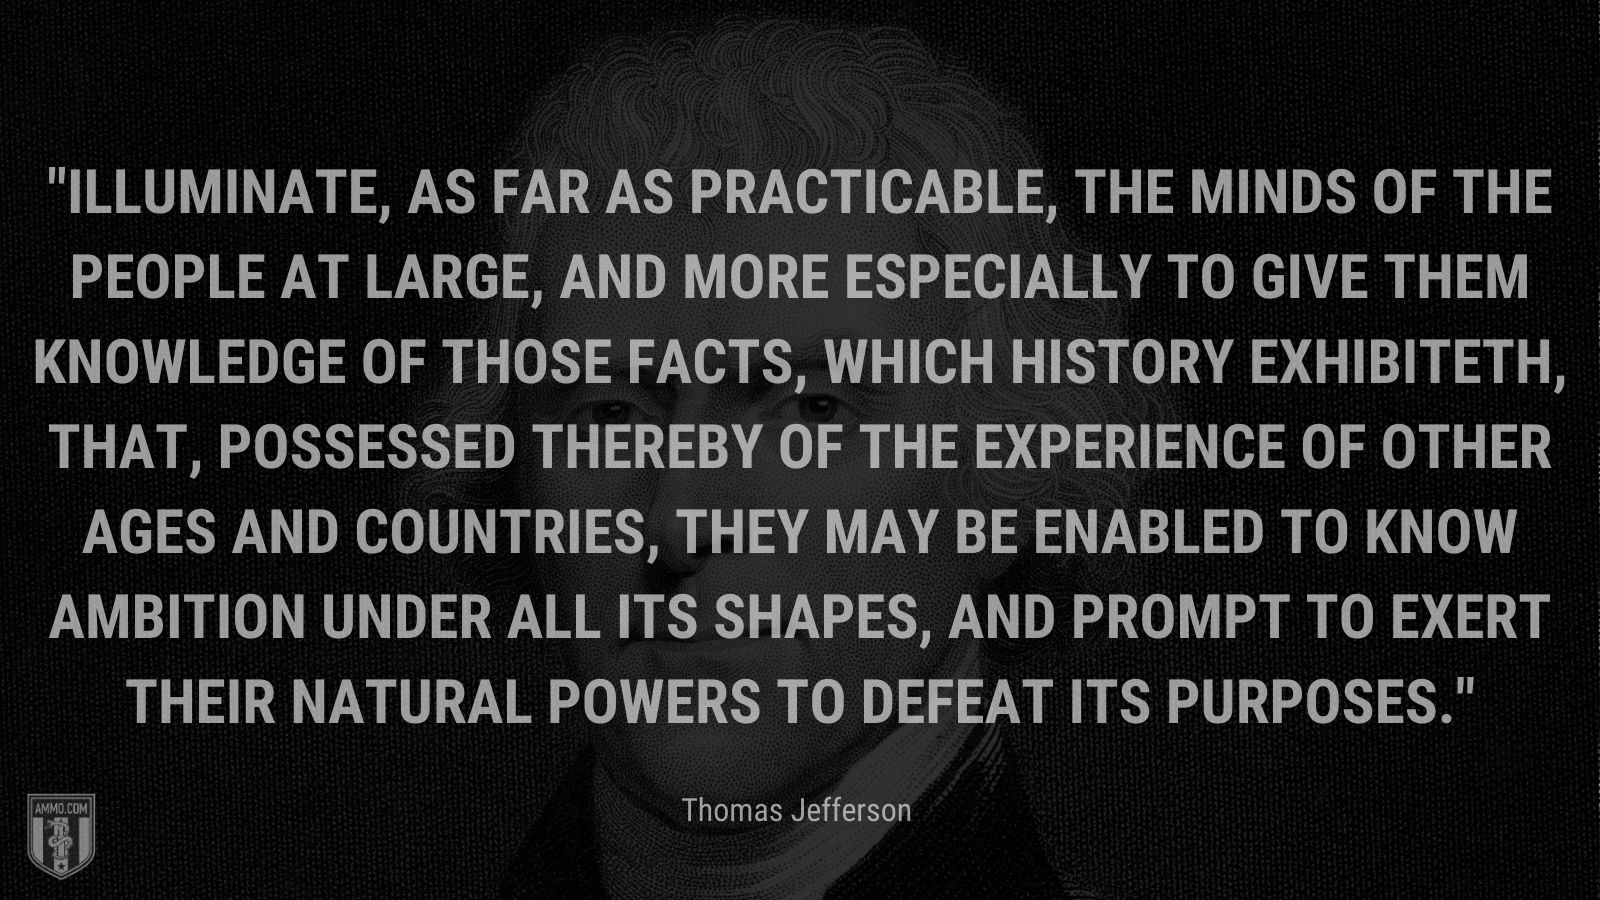 """""""Illuminate, as far as practicable, the minds of the people at large, and more especially to give them knowledge of those facts, which history exhibiteth, that, possessed thereby of the experience of other ages and countries, they may be enabled to know ambition under all its shapes, and prompt to exert their natural powers to defeat its purposes."""" - Thomas Jefferson"""